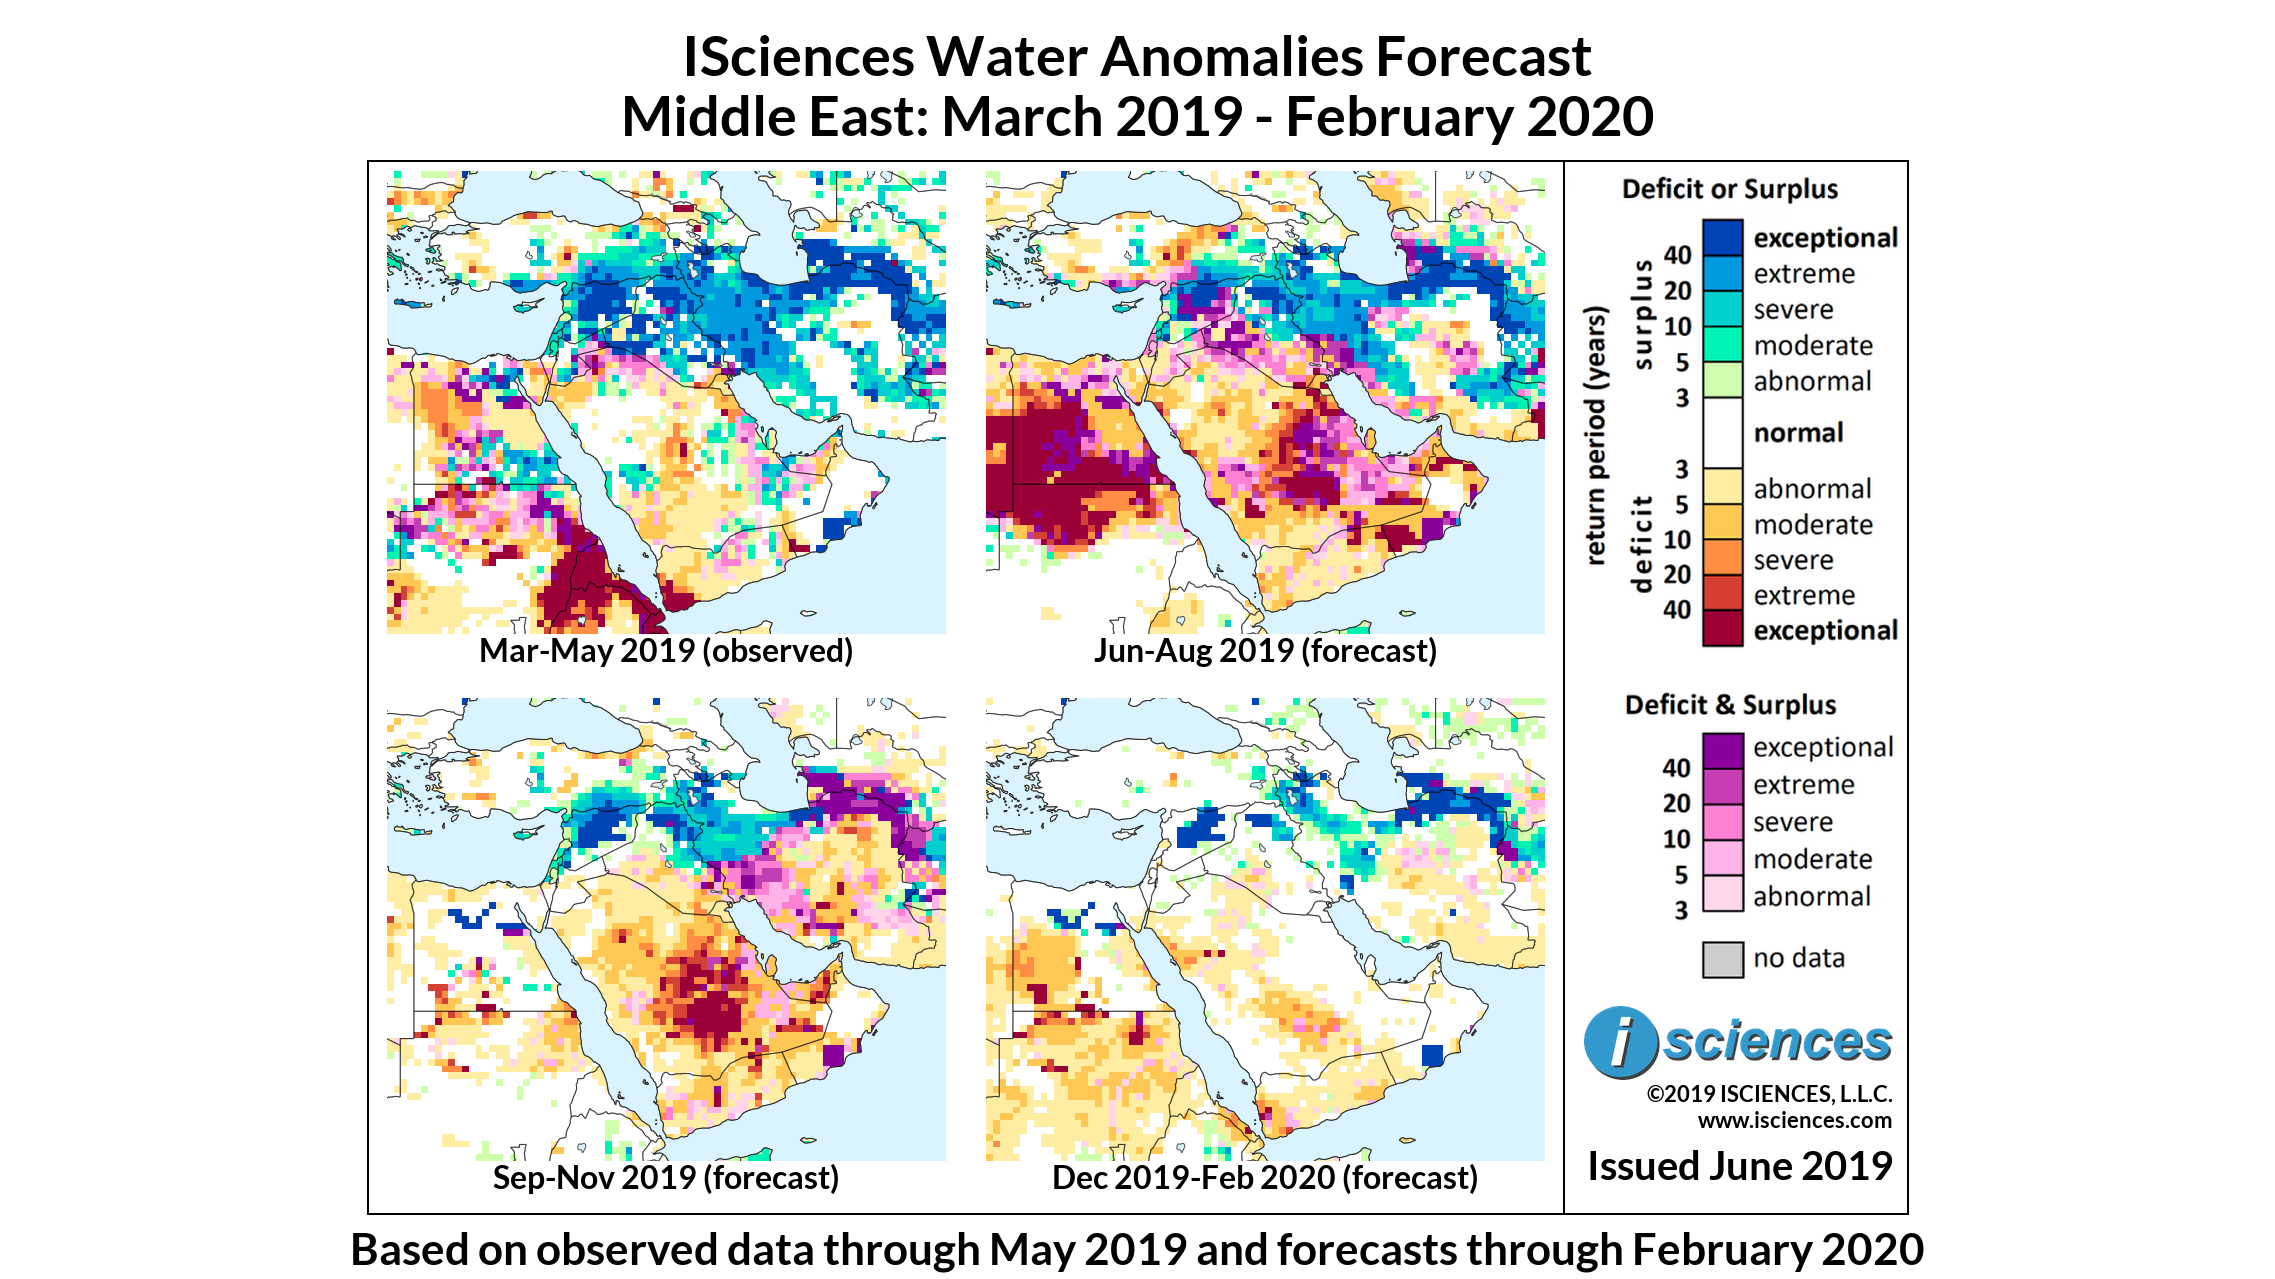 ISciences_Middle_East_Composite_Adjusted_201903-202002_3mo_panel.png